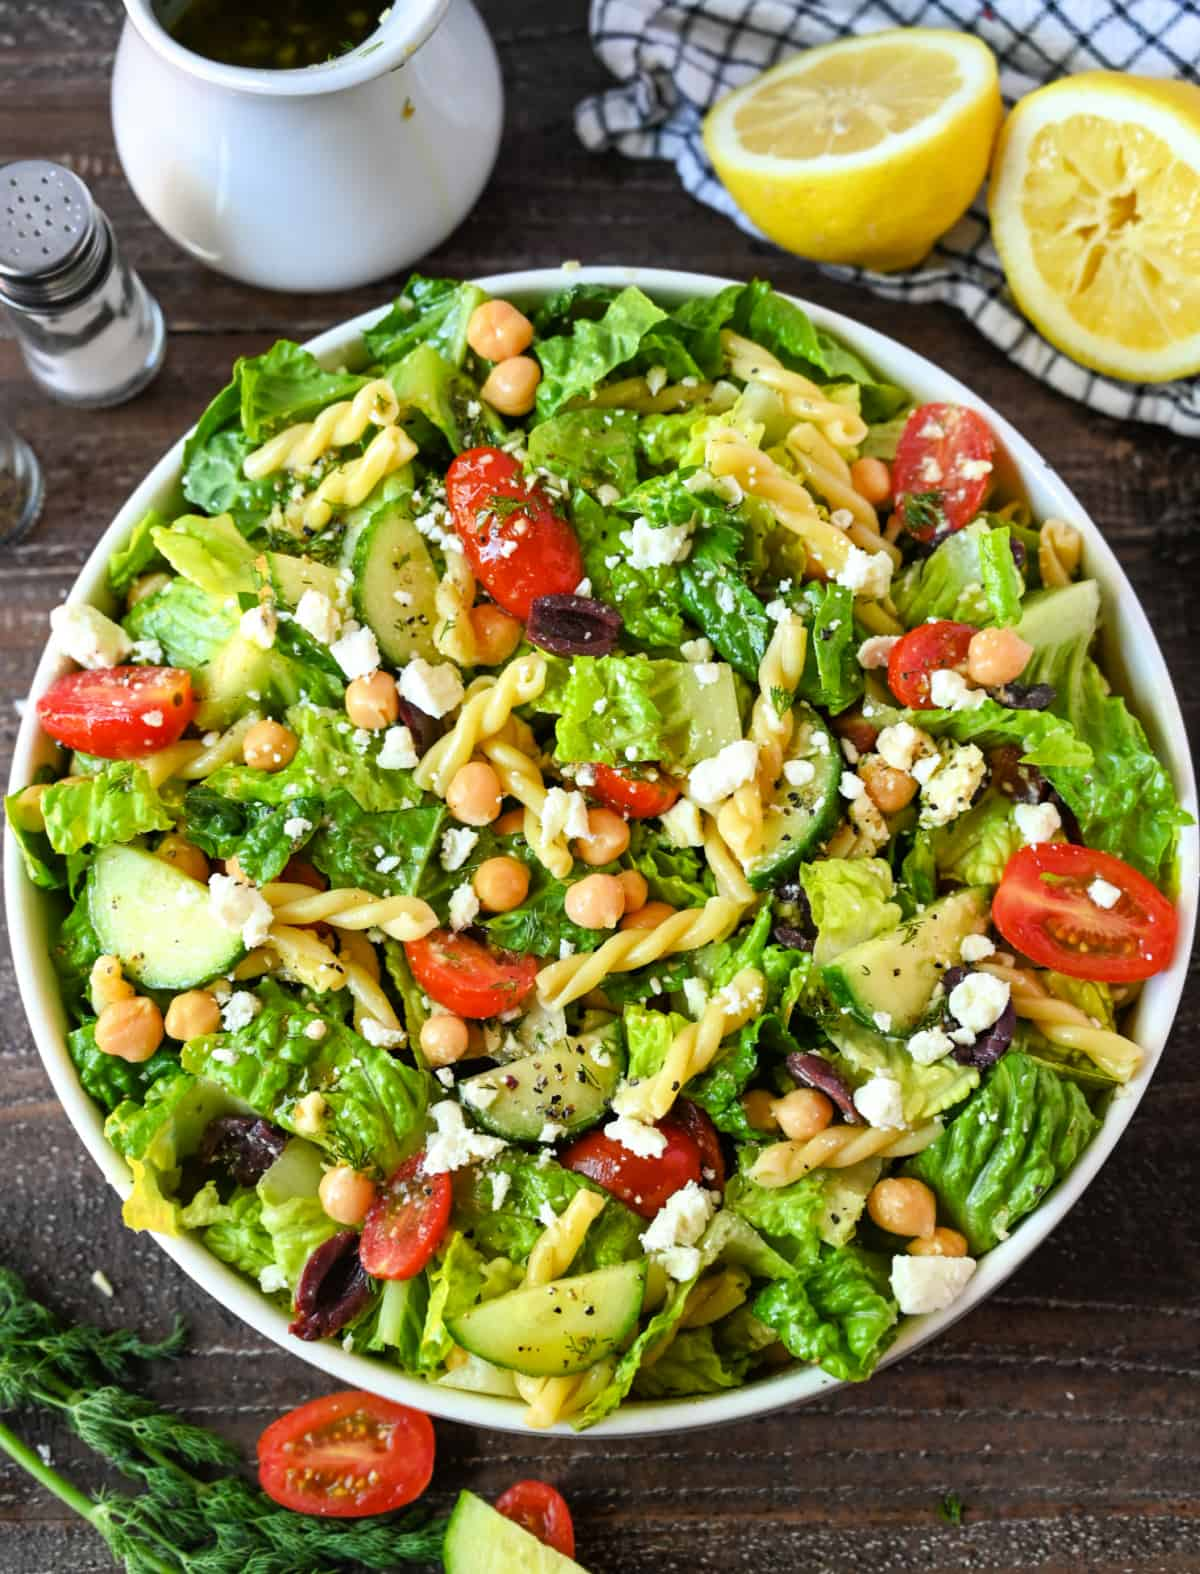 Chopped greek salad with vinaigrette all tossed together in a large white bowl.